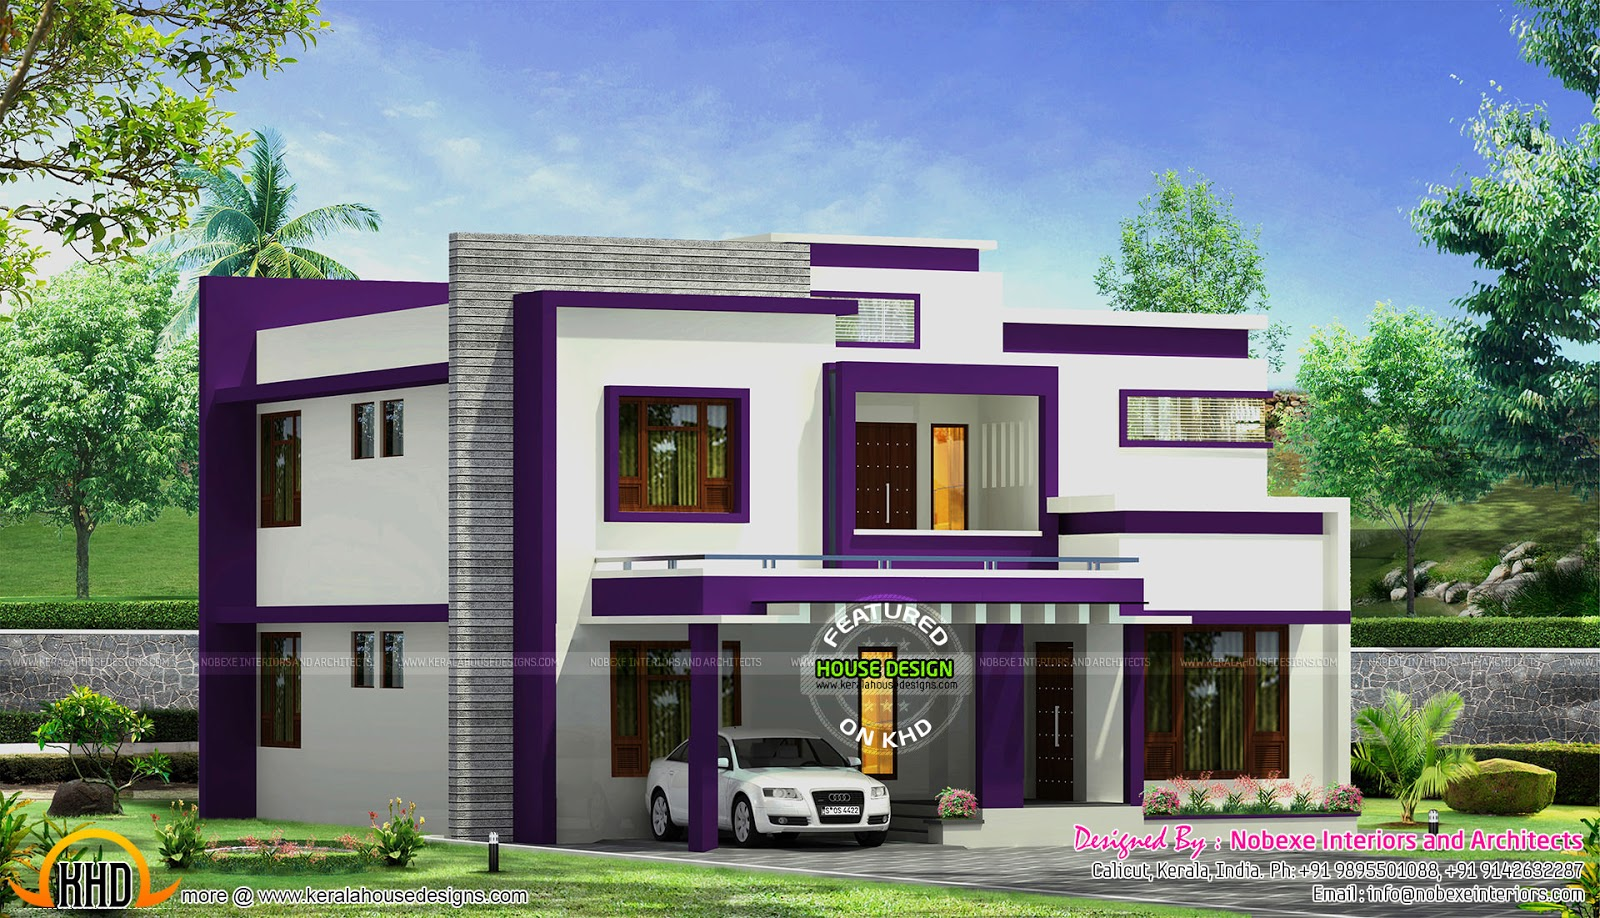 Contemporary home design by nobexe interiors kerala home for House design plans with photos